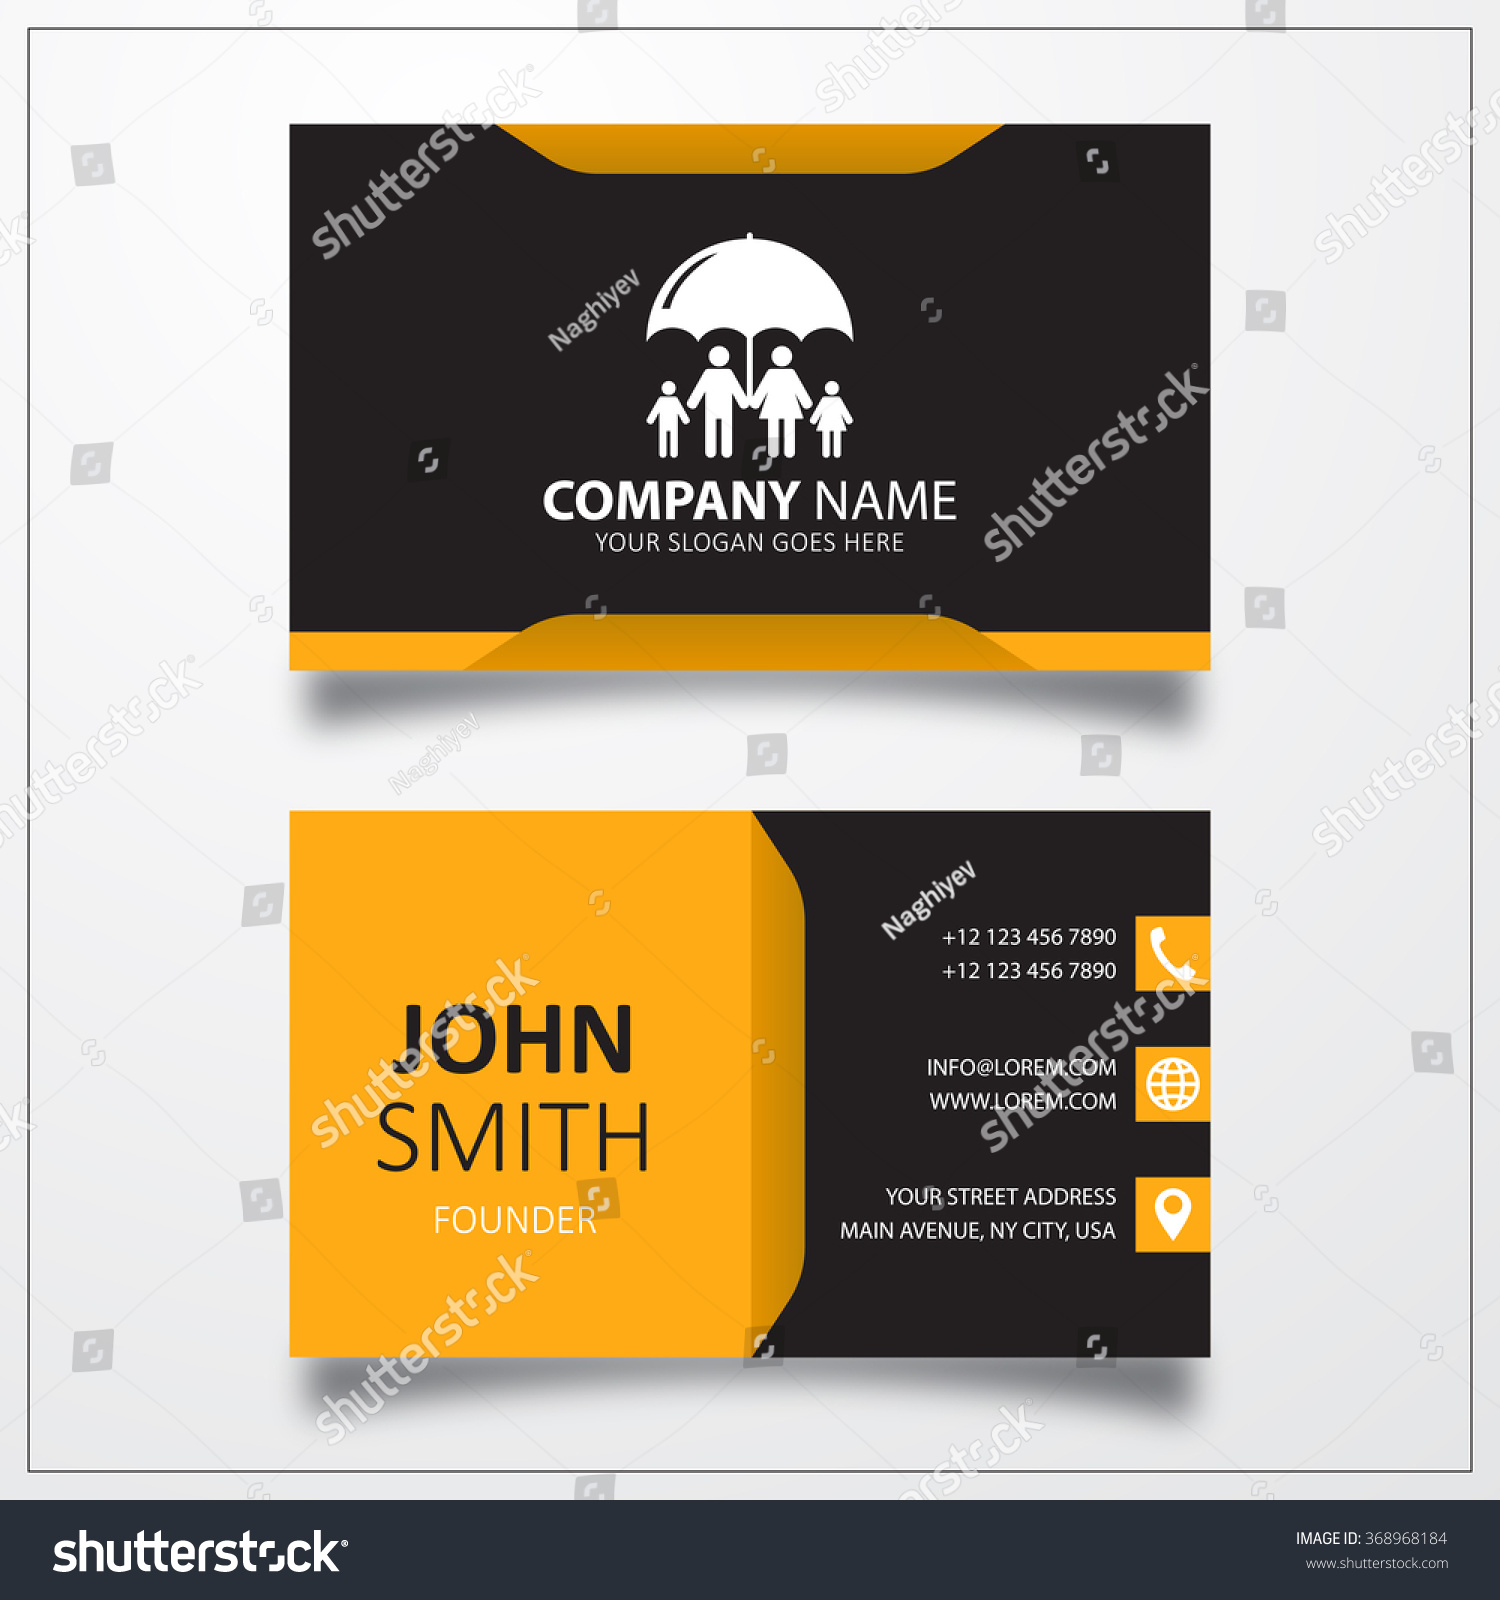 85 primerica business card template magnificent primerica primerica business card template image collections free youth pastor cards gallery colourmoves